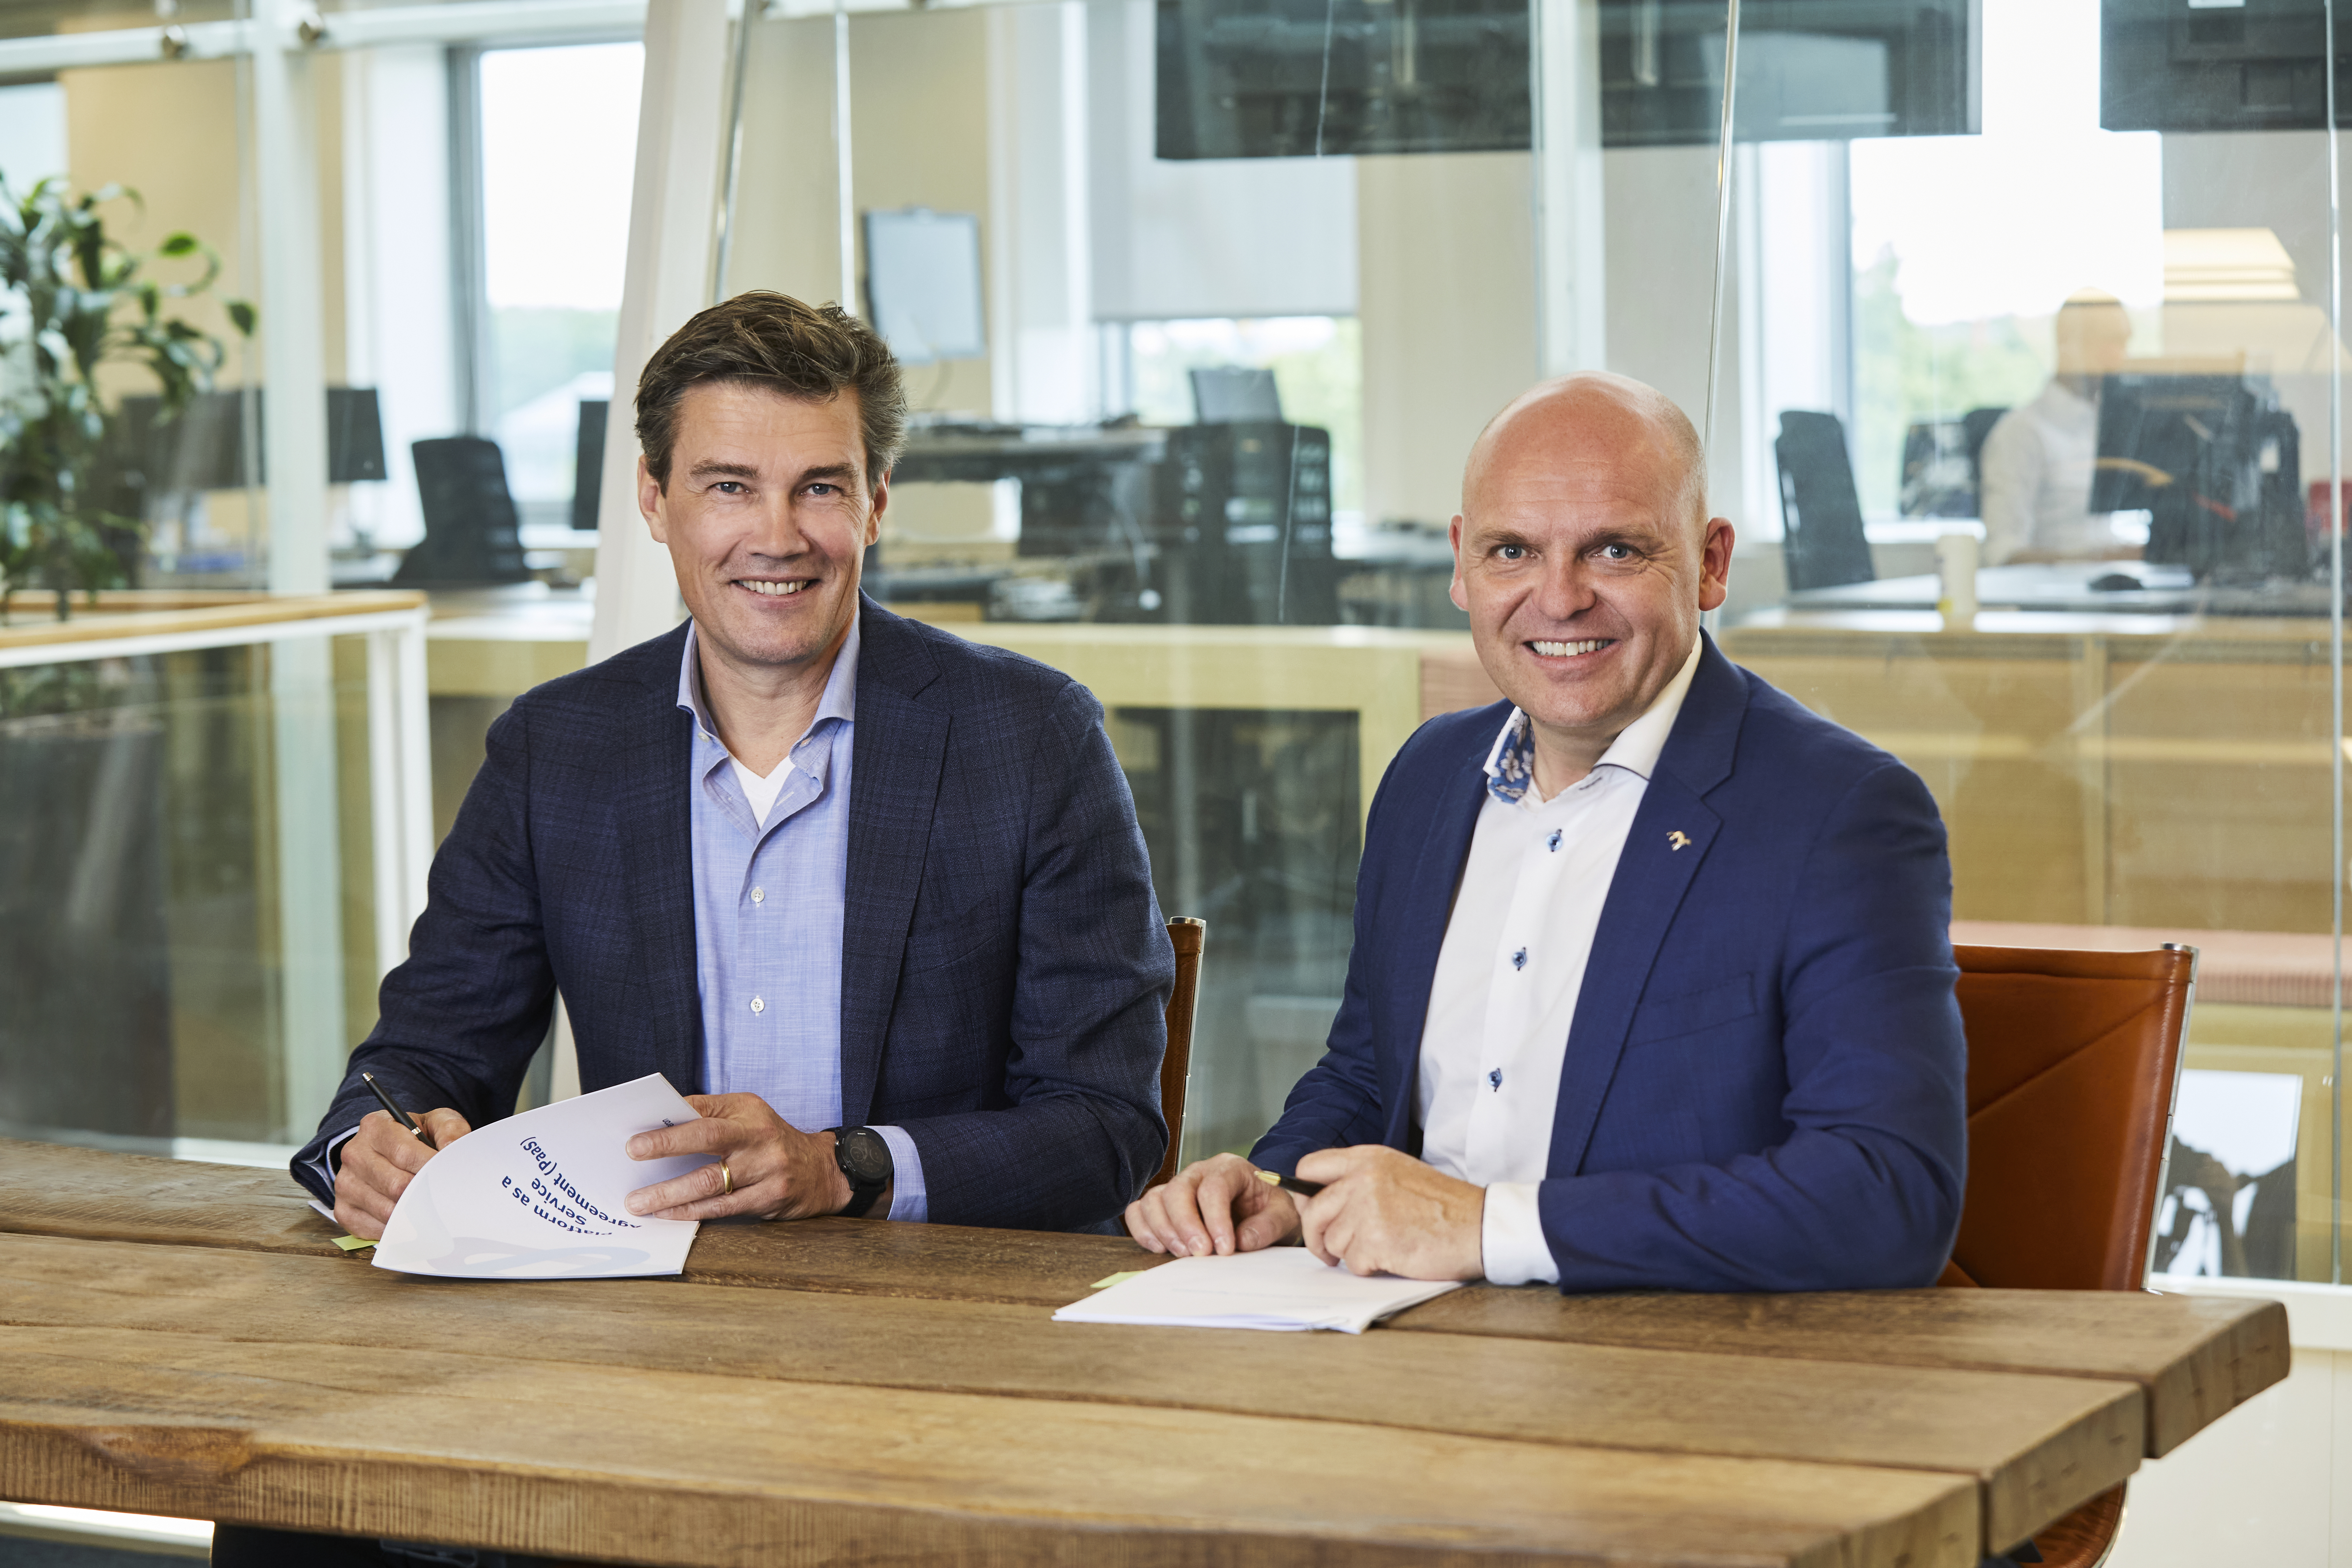 On the left Bram Poeth, CCO at EVBox Group and Mads Brøgger, director of the energy division at Norlys